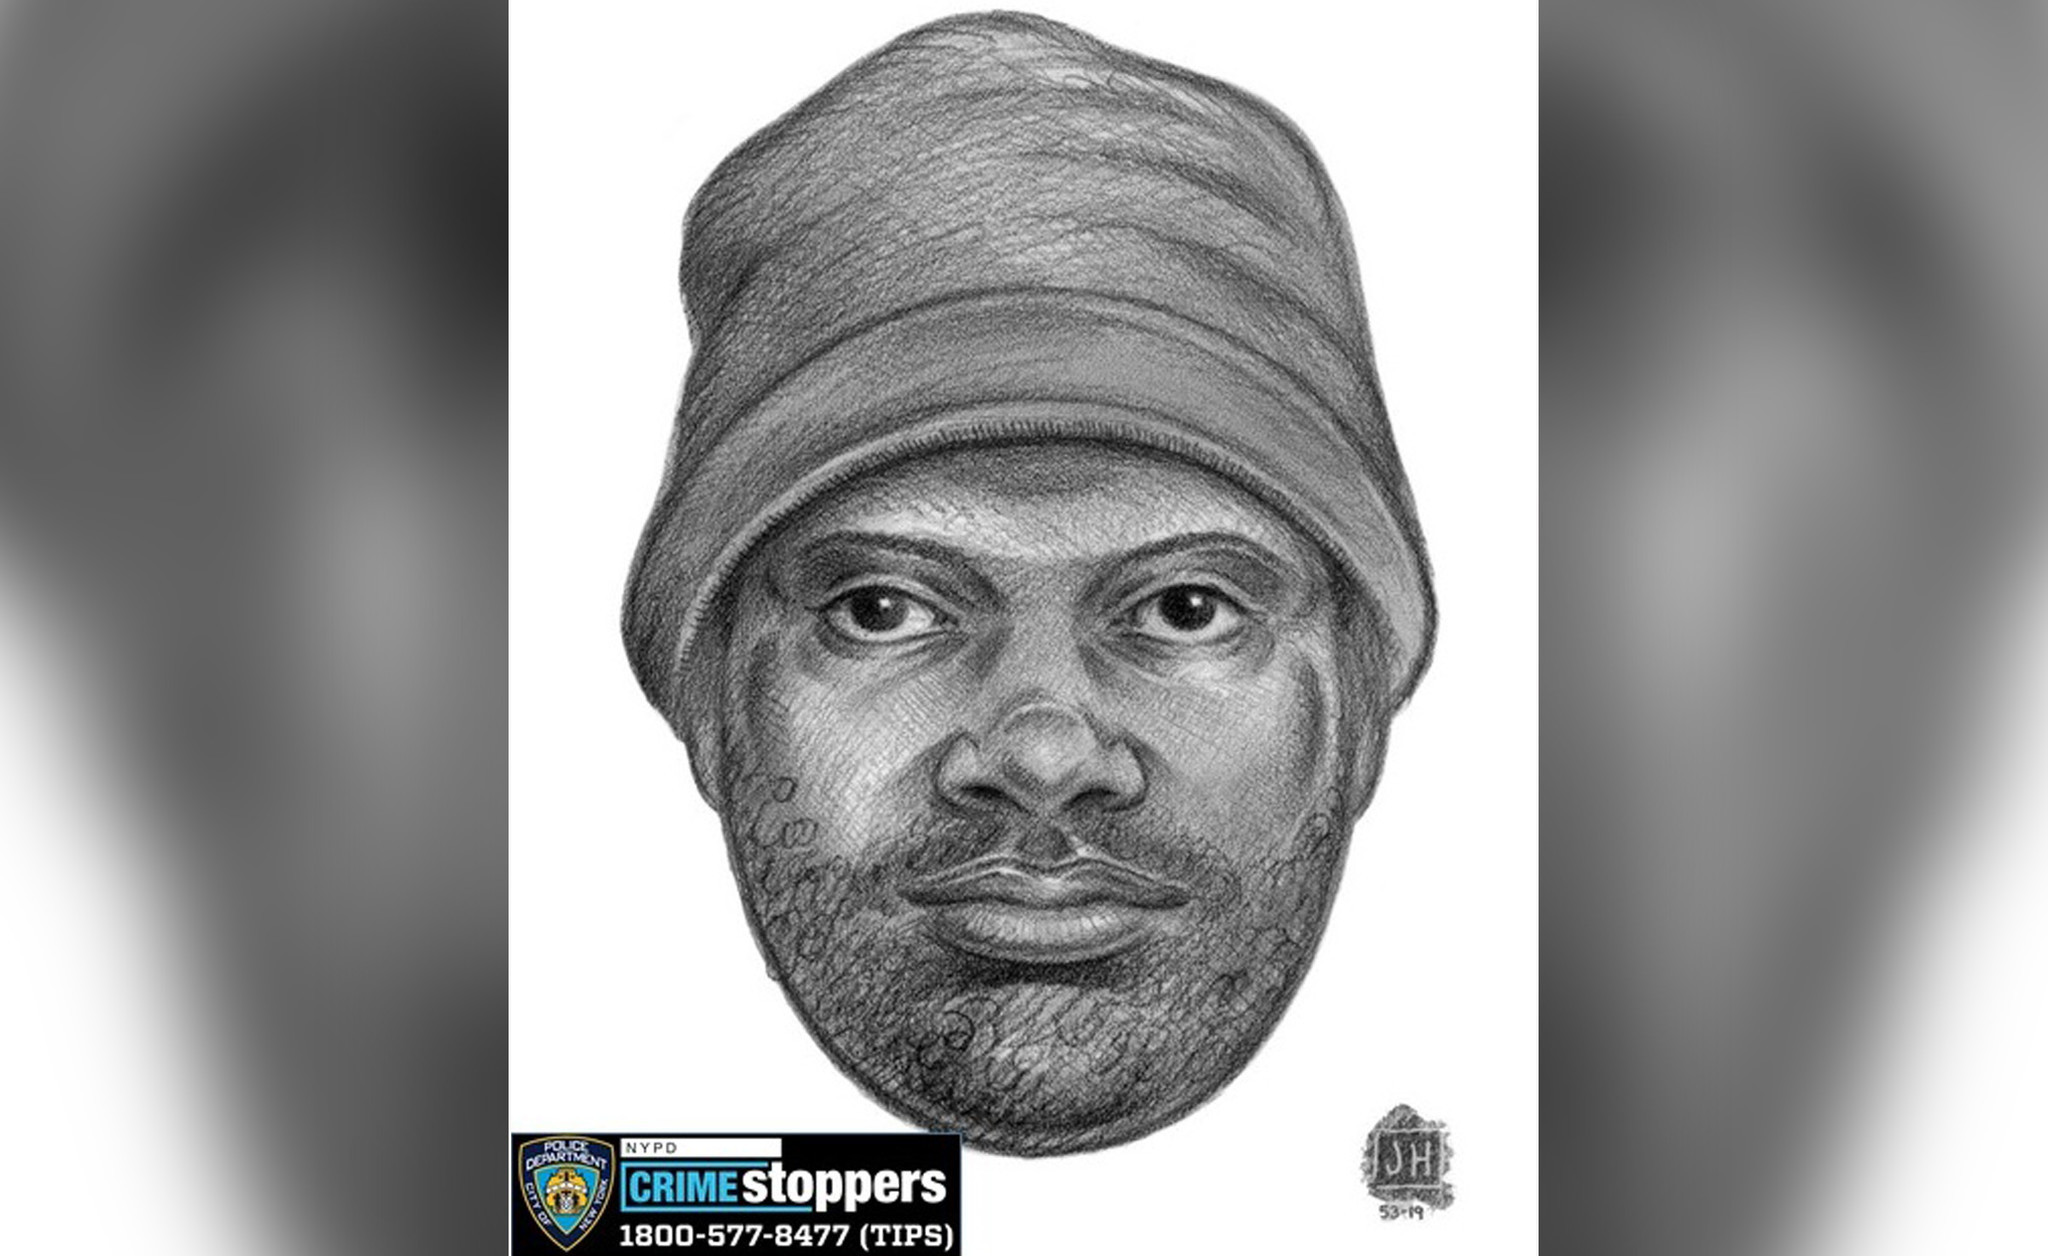 Suspect sought for bilking thousands from NYC seniors